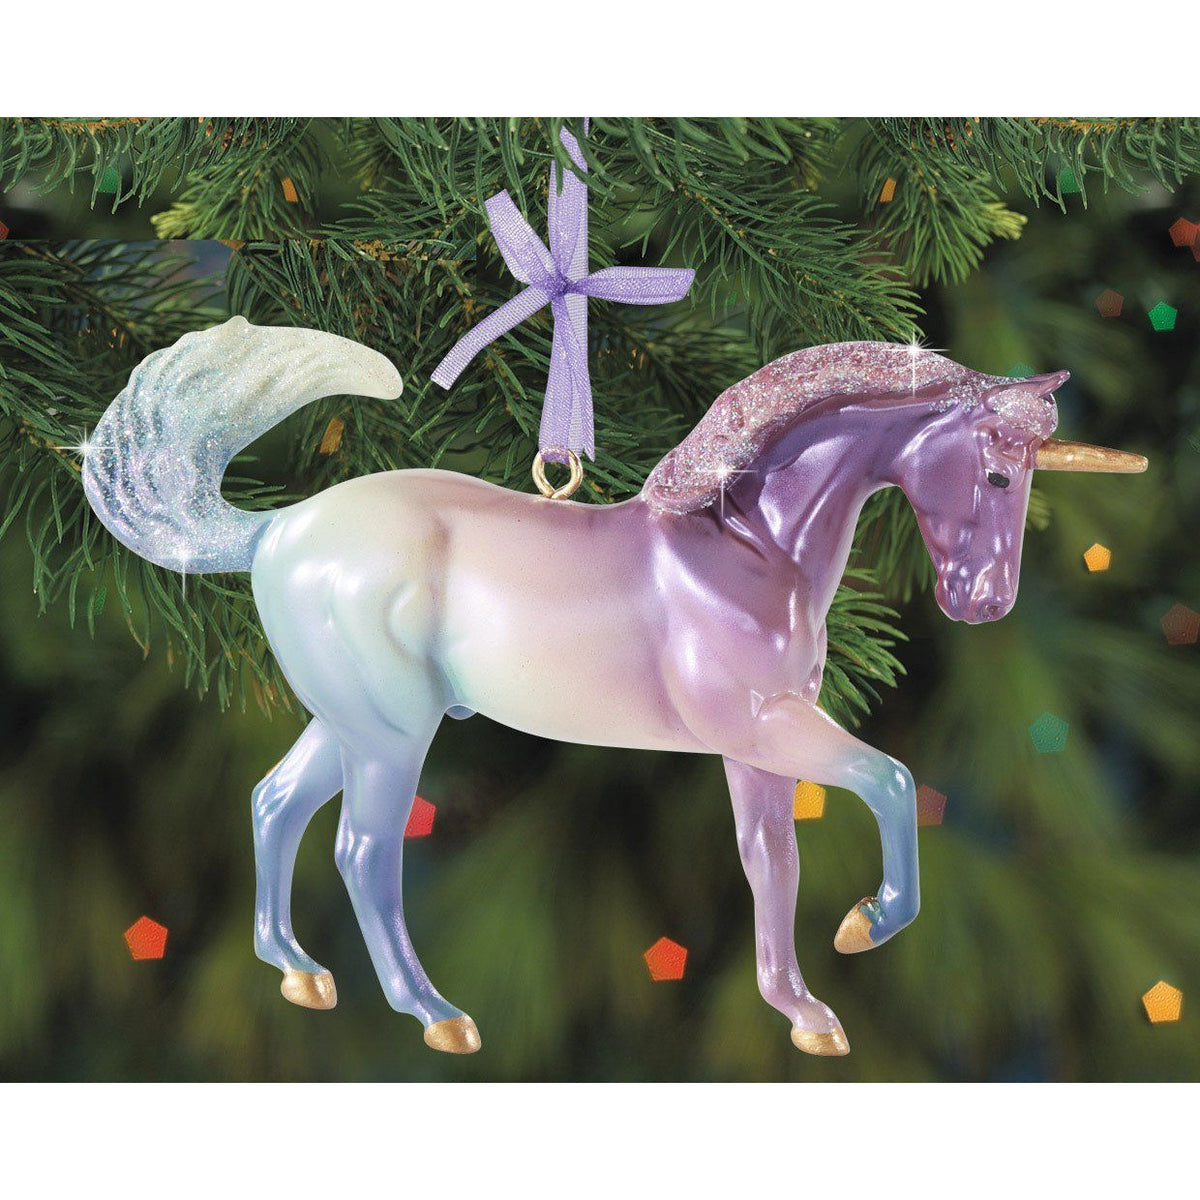 Breyer Holiday Ornament 2020 Cosmo The Unicorn